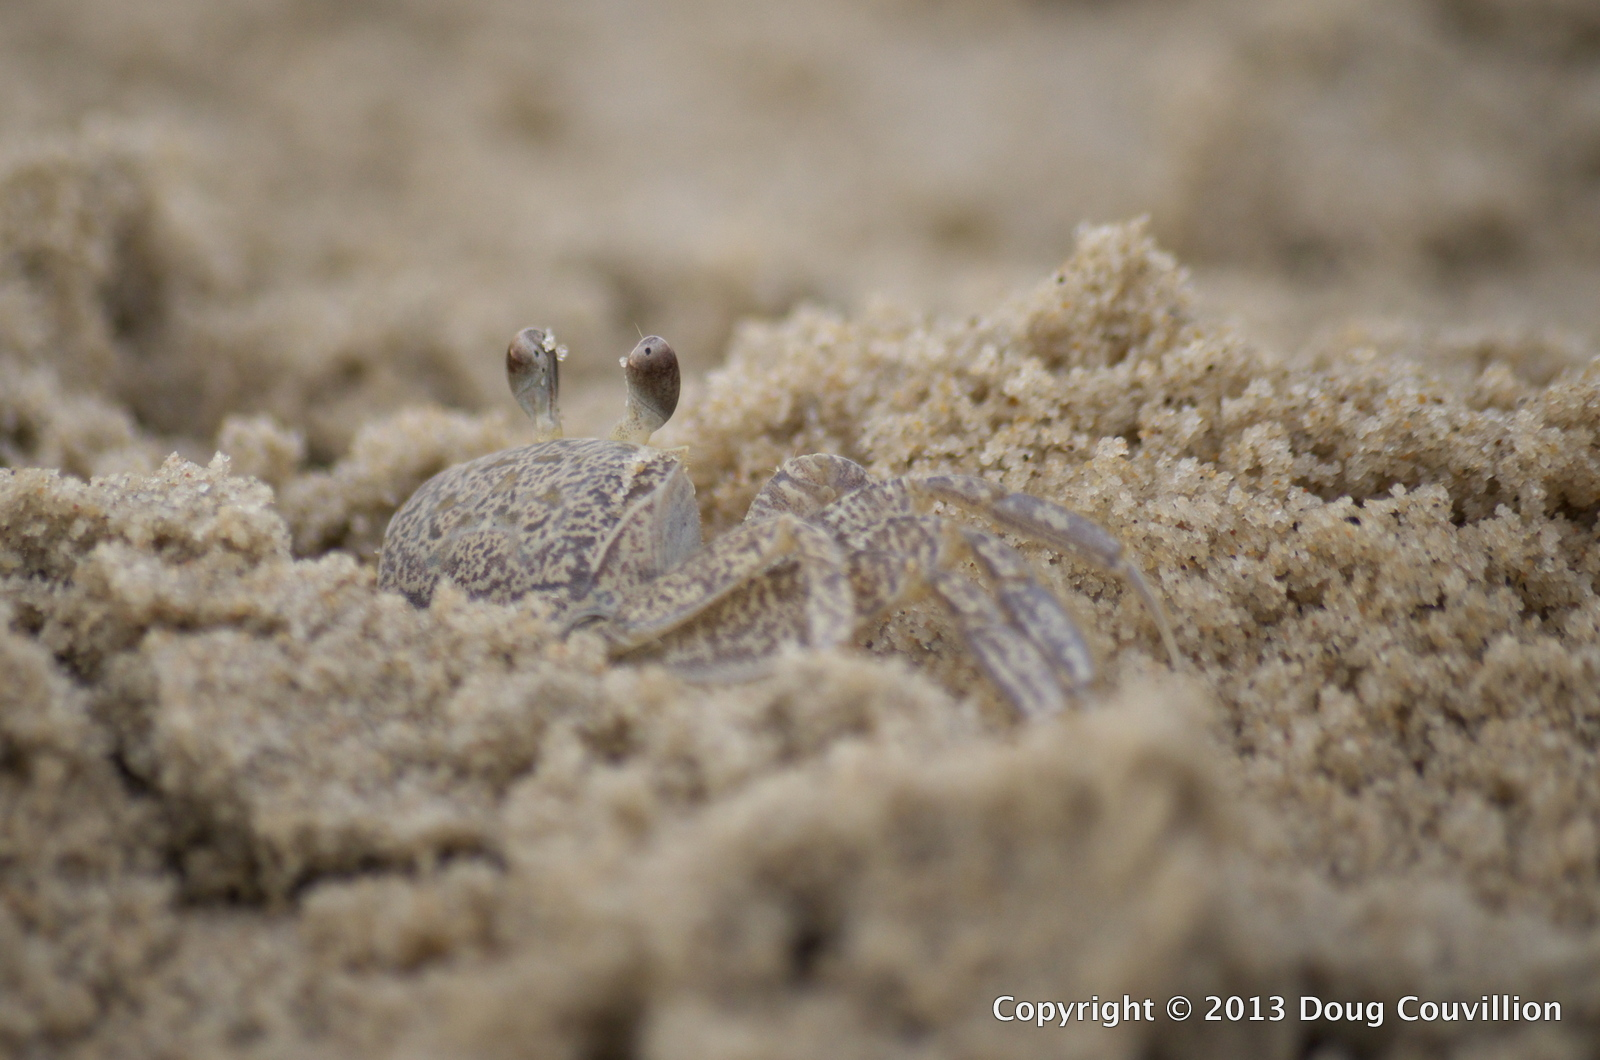 photograph of a crab in the sand at Corolla, North Carolina